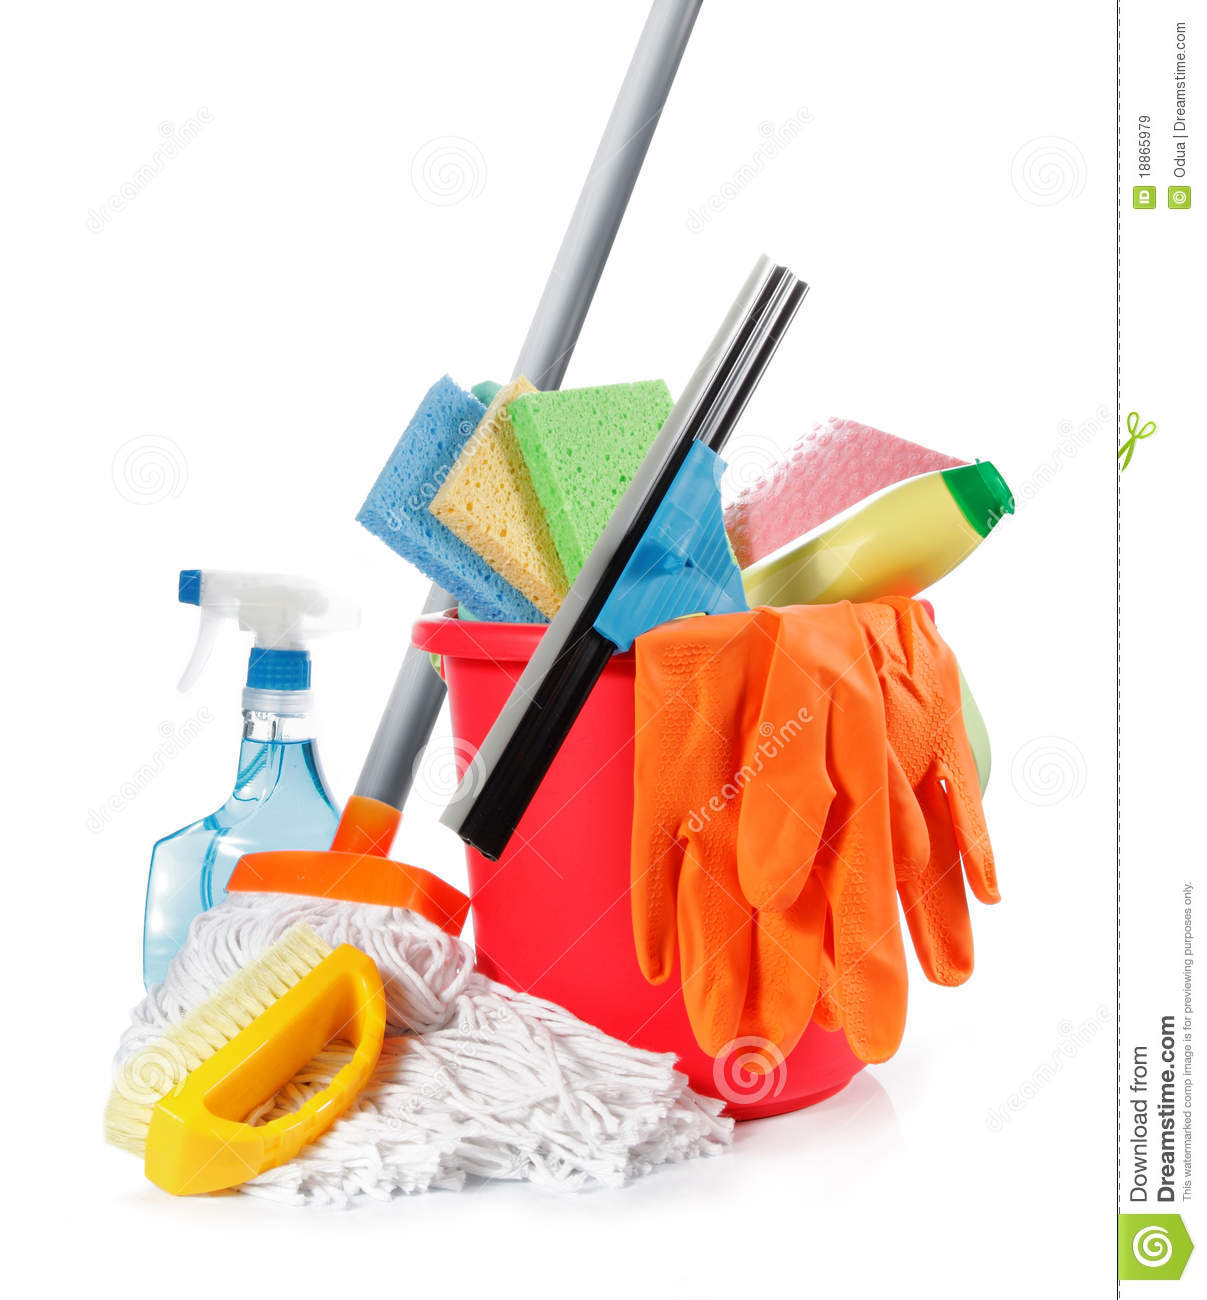 Cleaning produkty